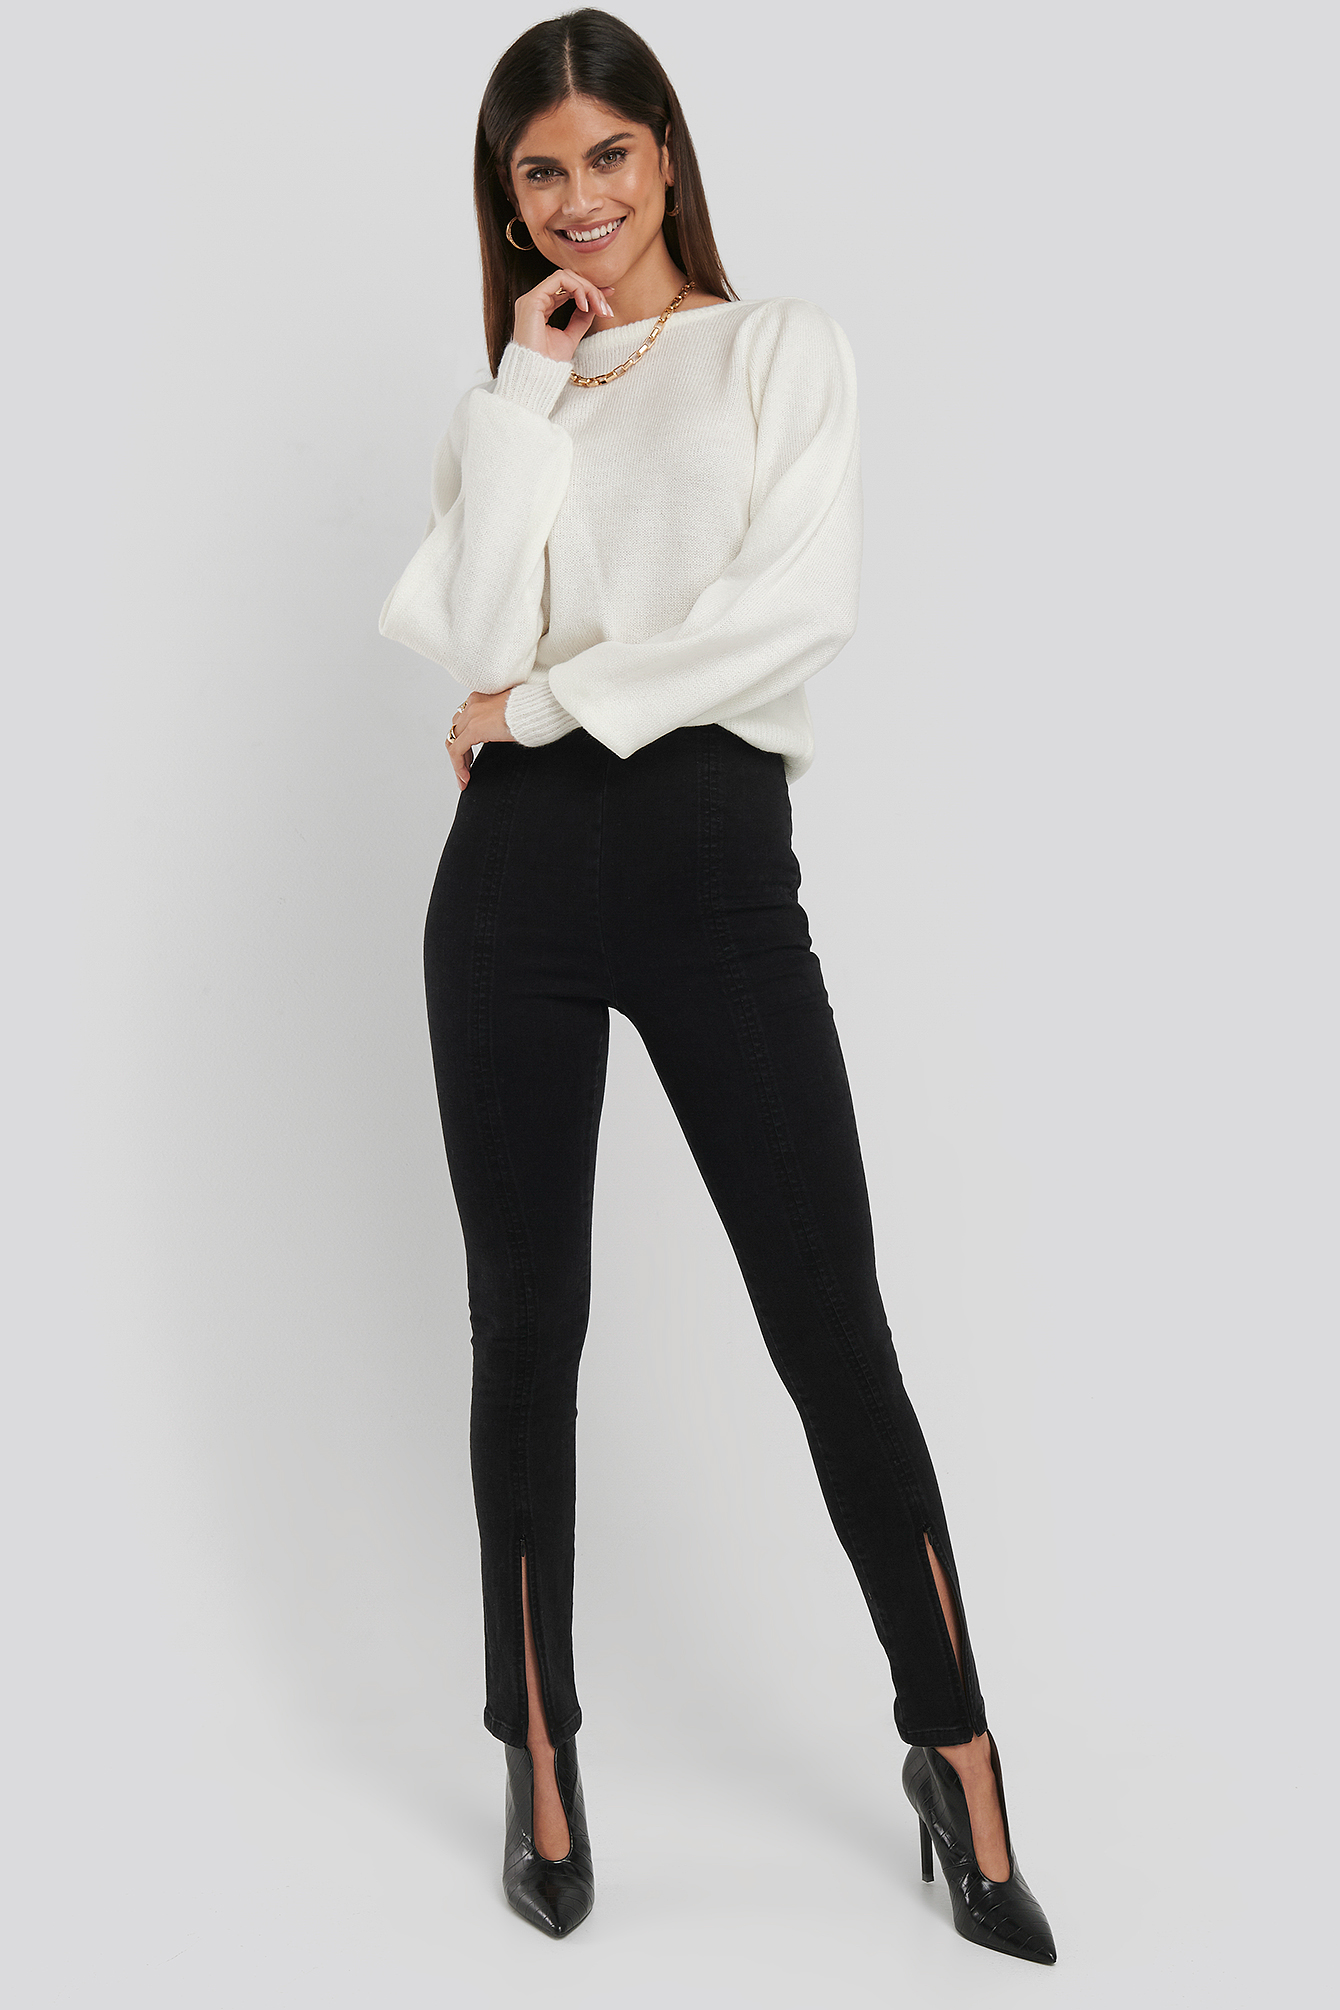 Black High Waist Front Slit Skinny Jeans